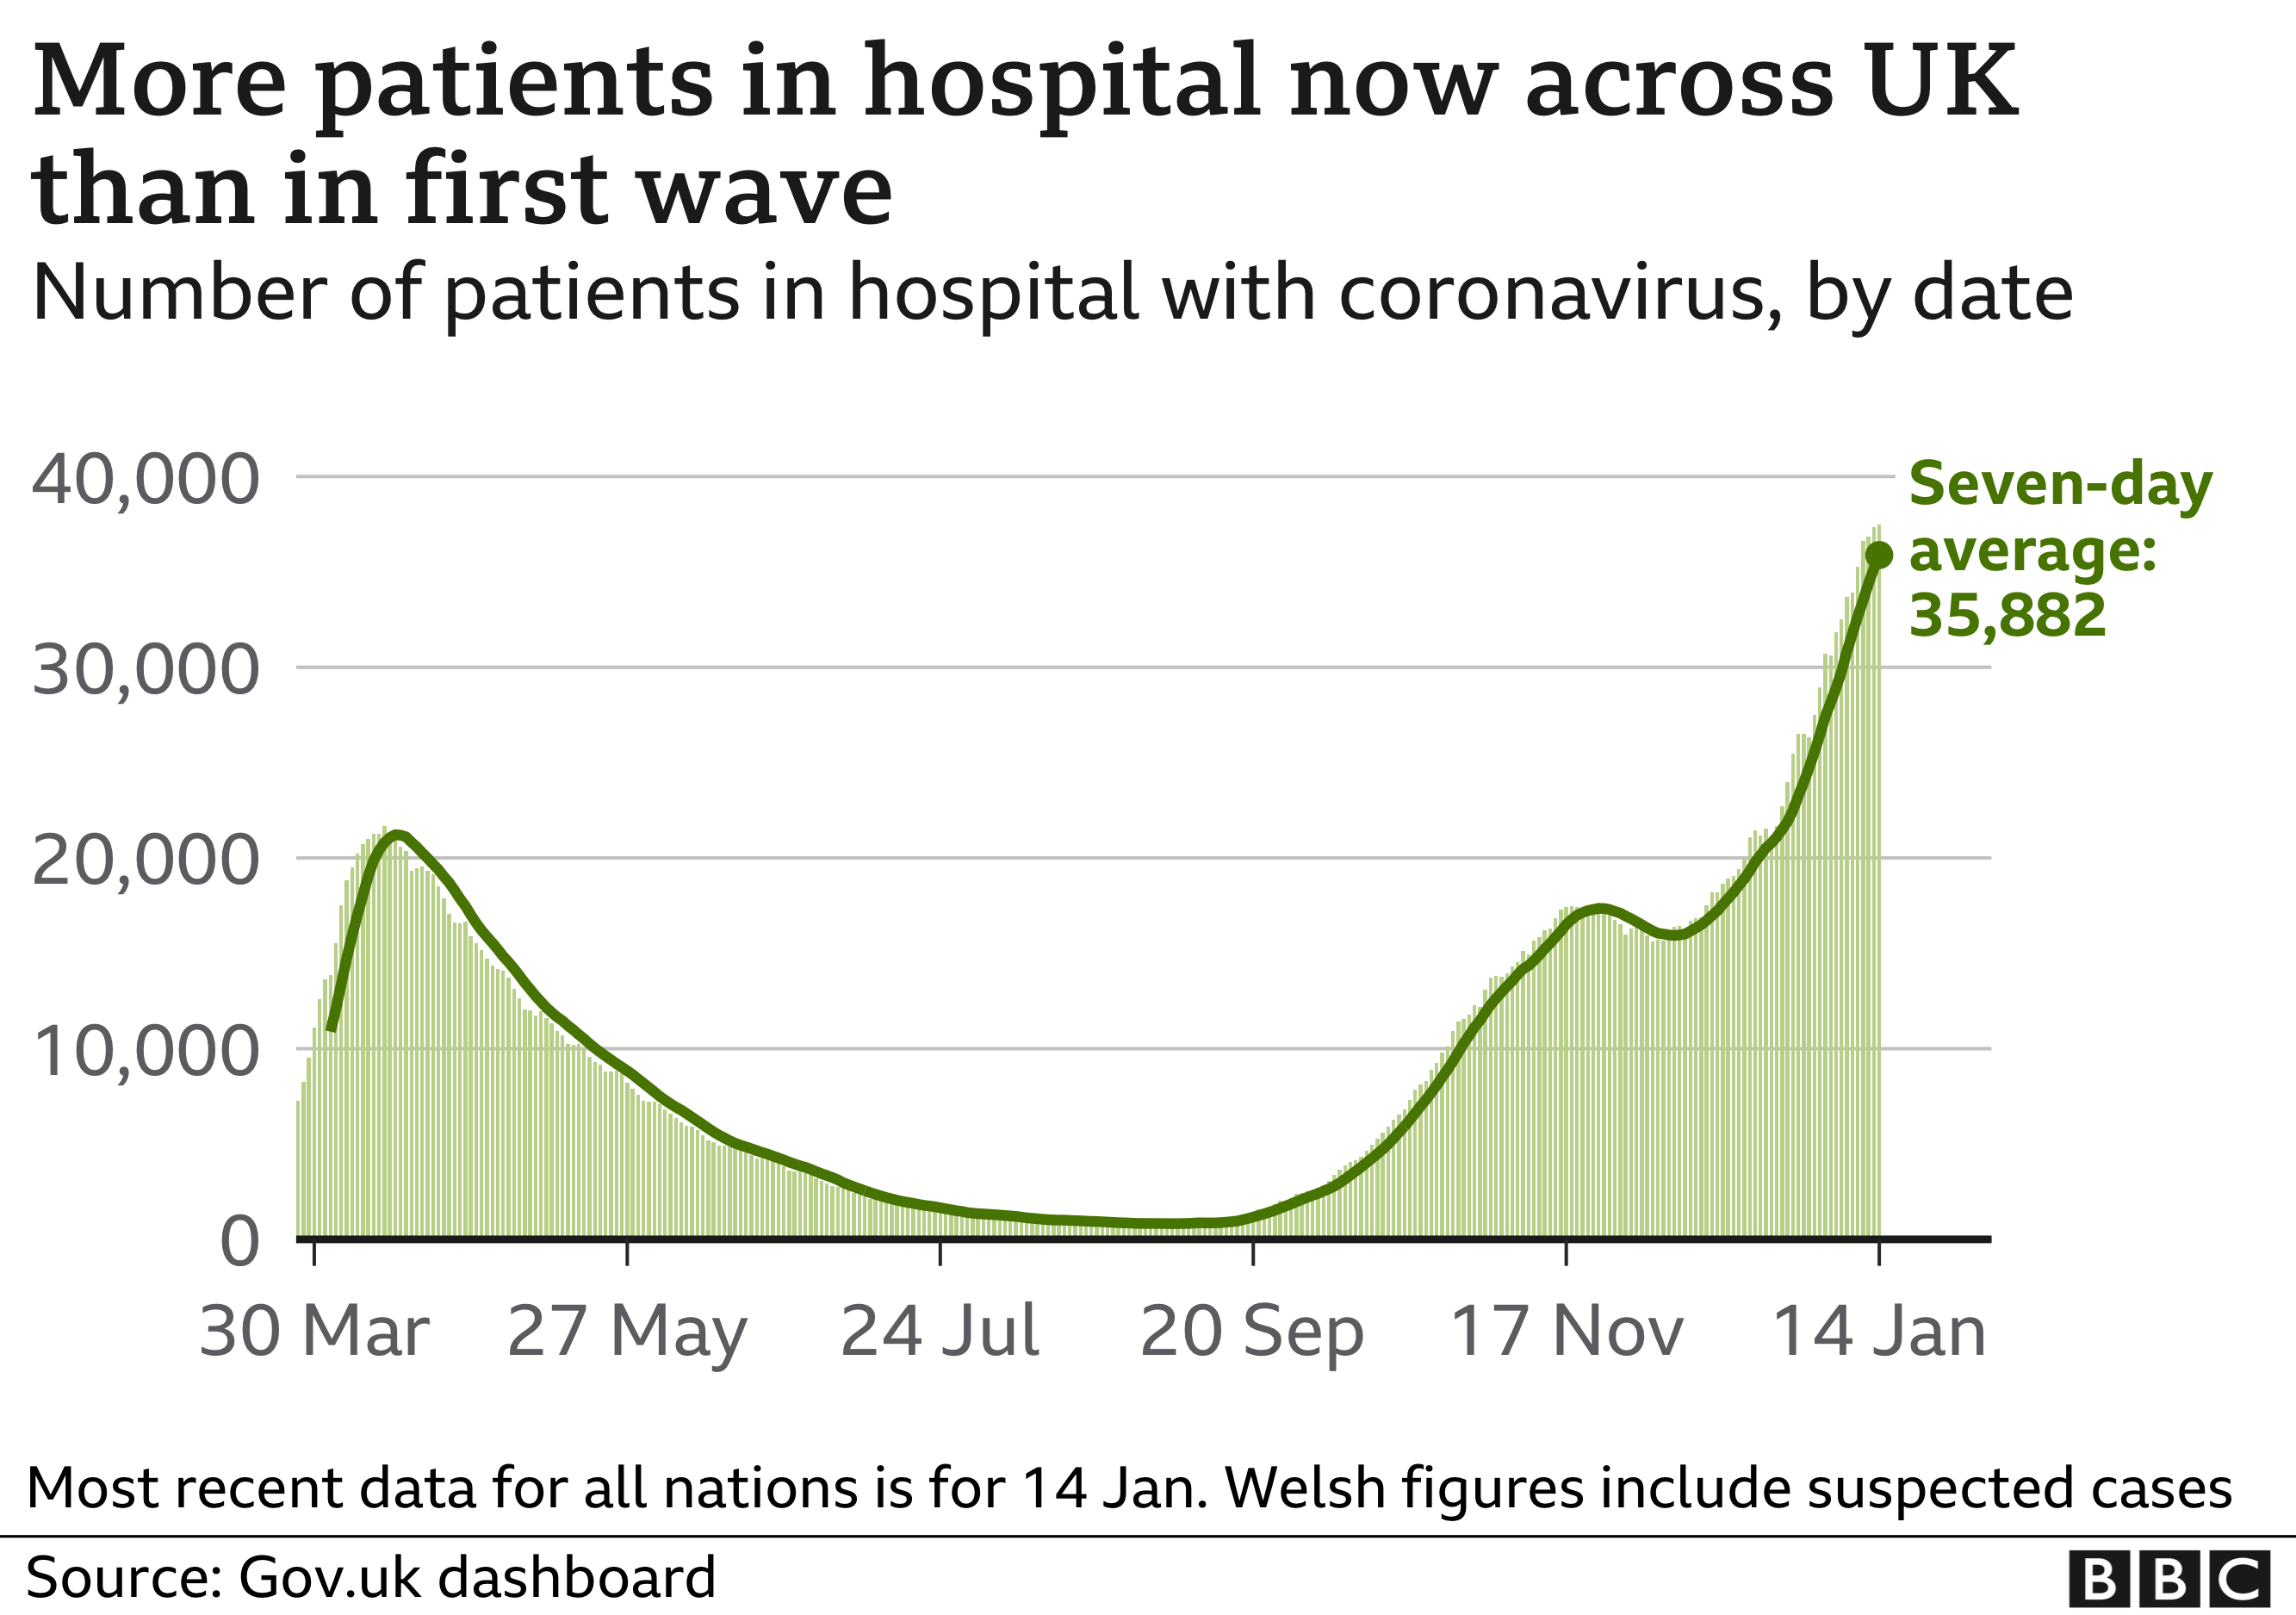 Chart showing the number of coronavirus patients in hospital in the UK. Updated 17 Jan.